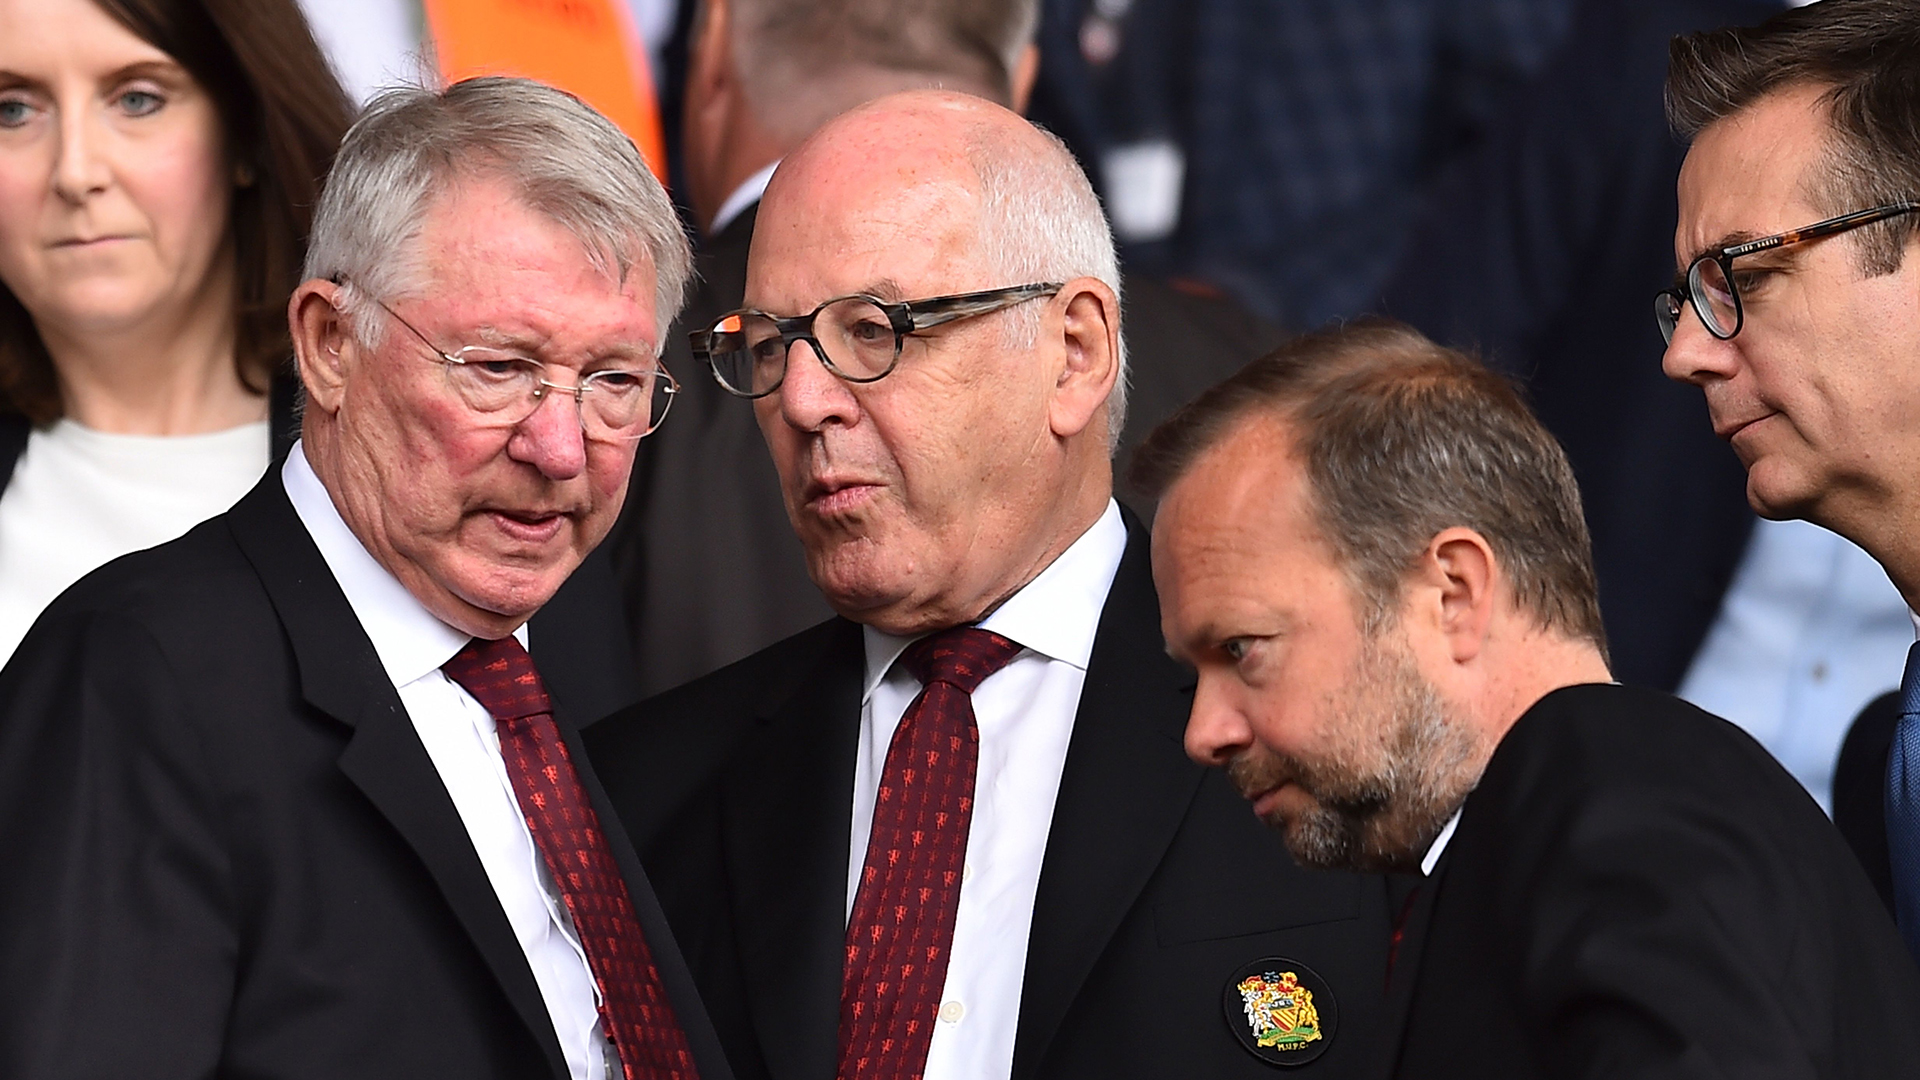 It S Not Manchester United Football Club Any More Club Legend Slams Ownership Transfer Chaos Goal Com